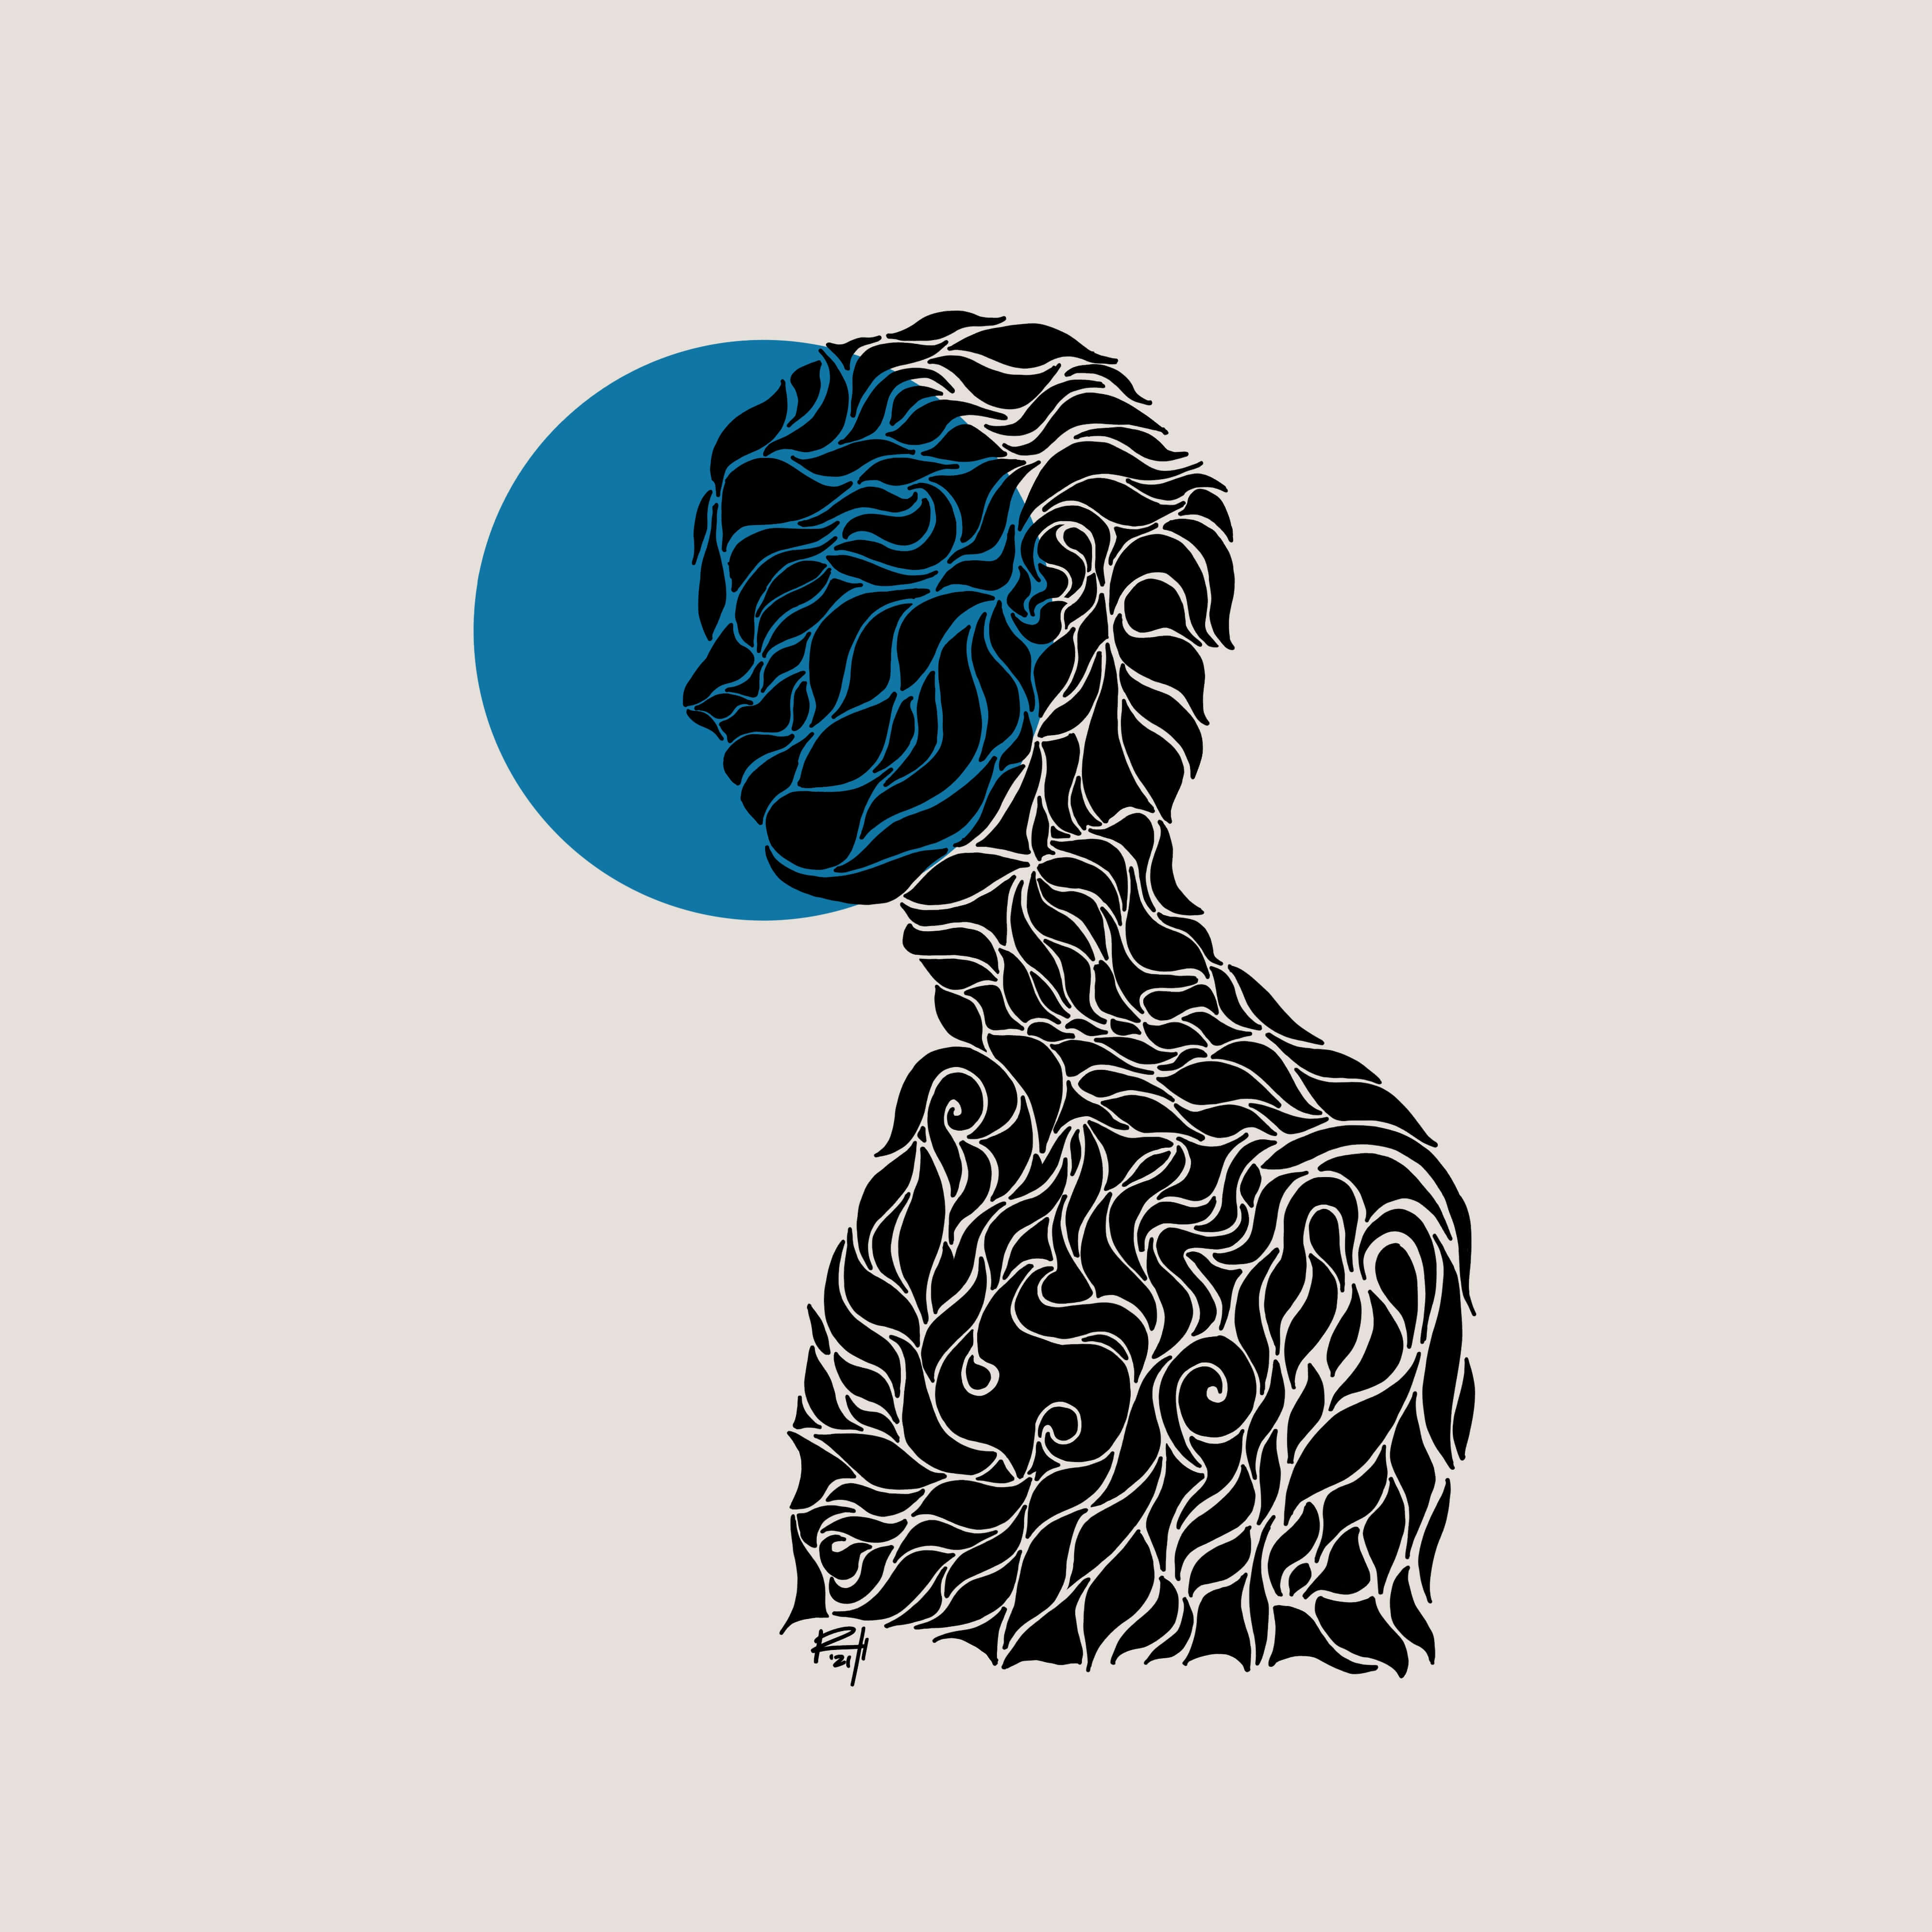 abstract drawing of a person thinking